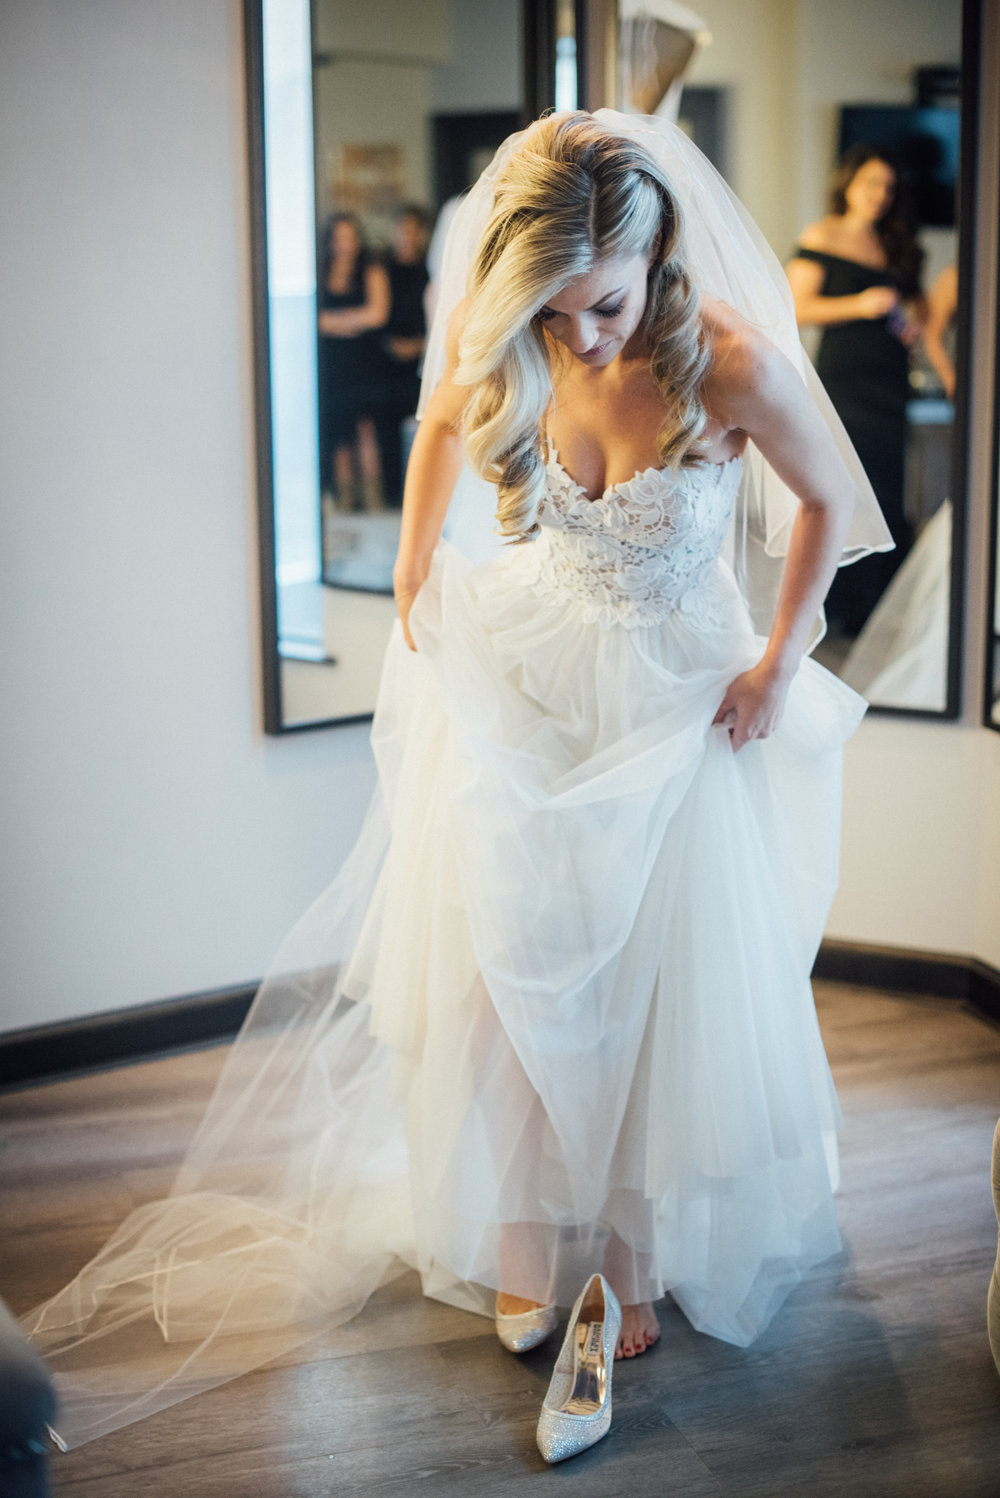 Bride Putting Dress On.jpg